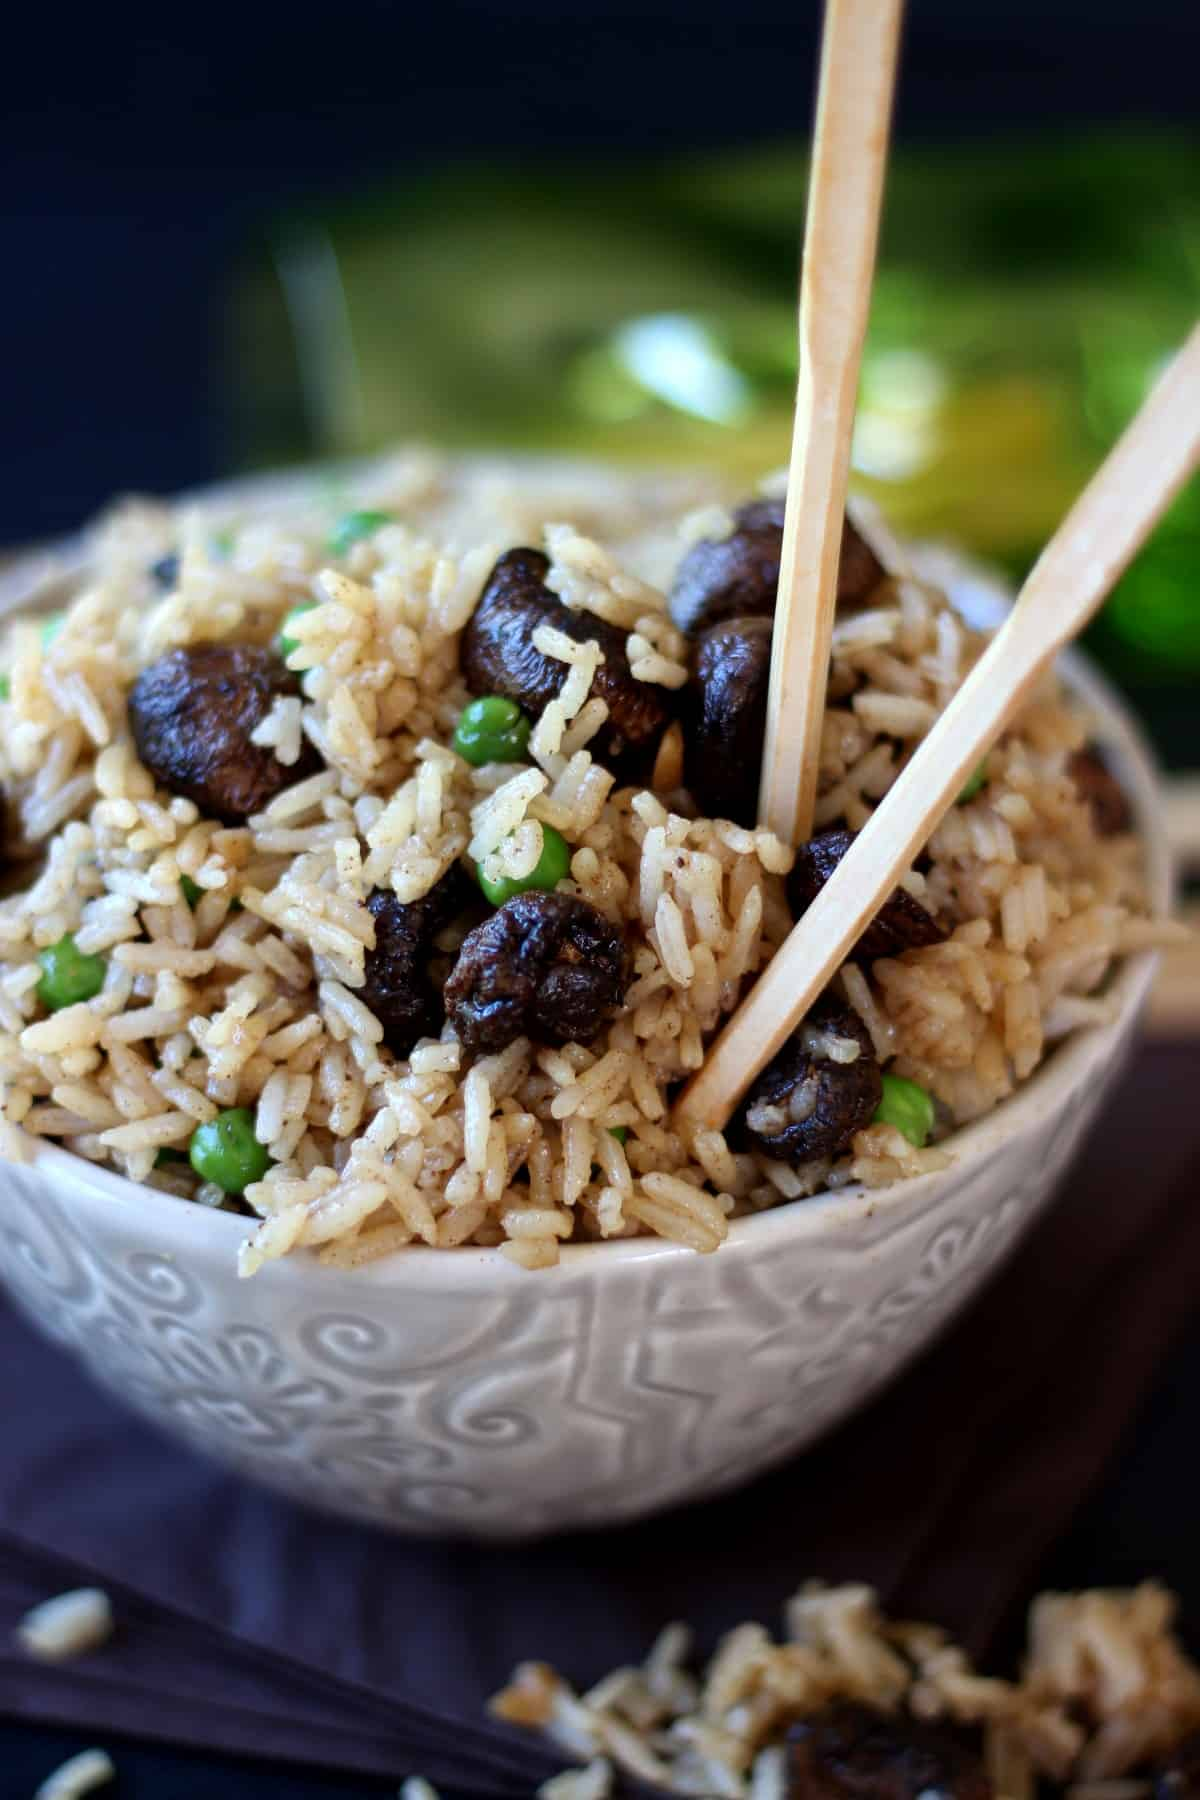 Rice, mushrooms and peas is filling a patterned bowl that's sitting on a pile of navy blue napkins. There are chopsticks sticking in the top to lift a bite.